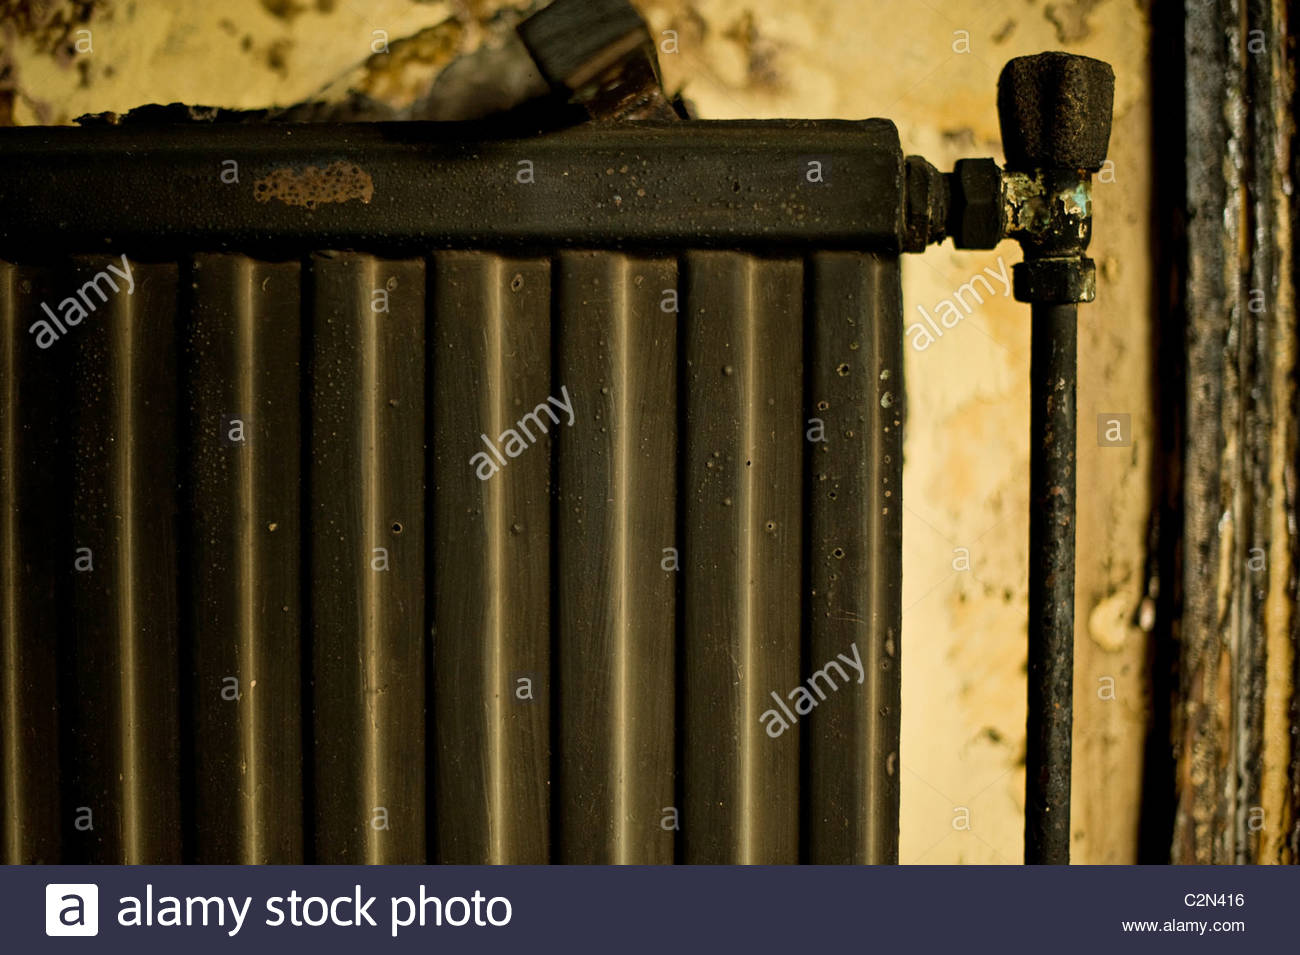 Abandoned fire damage room with a radiator on the Wall - Stock Image